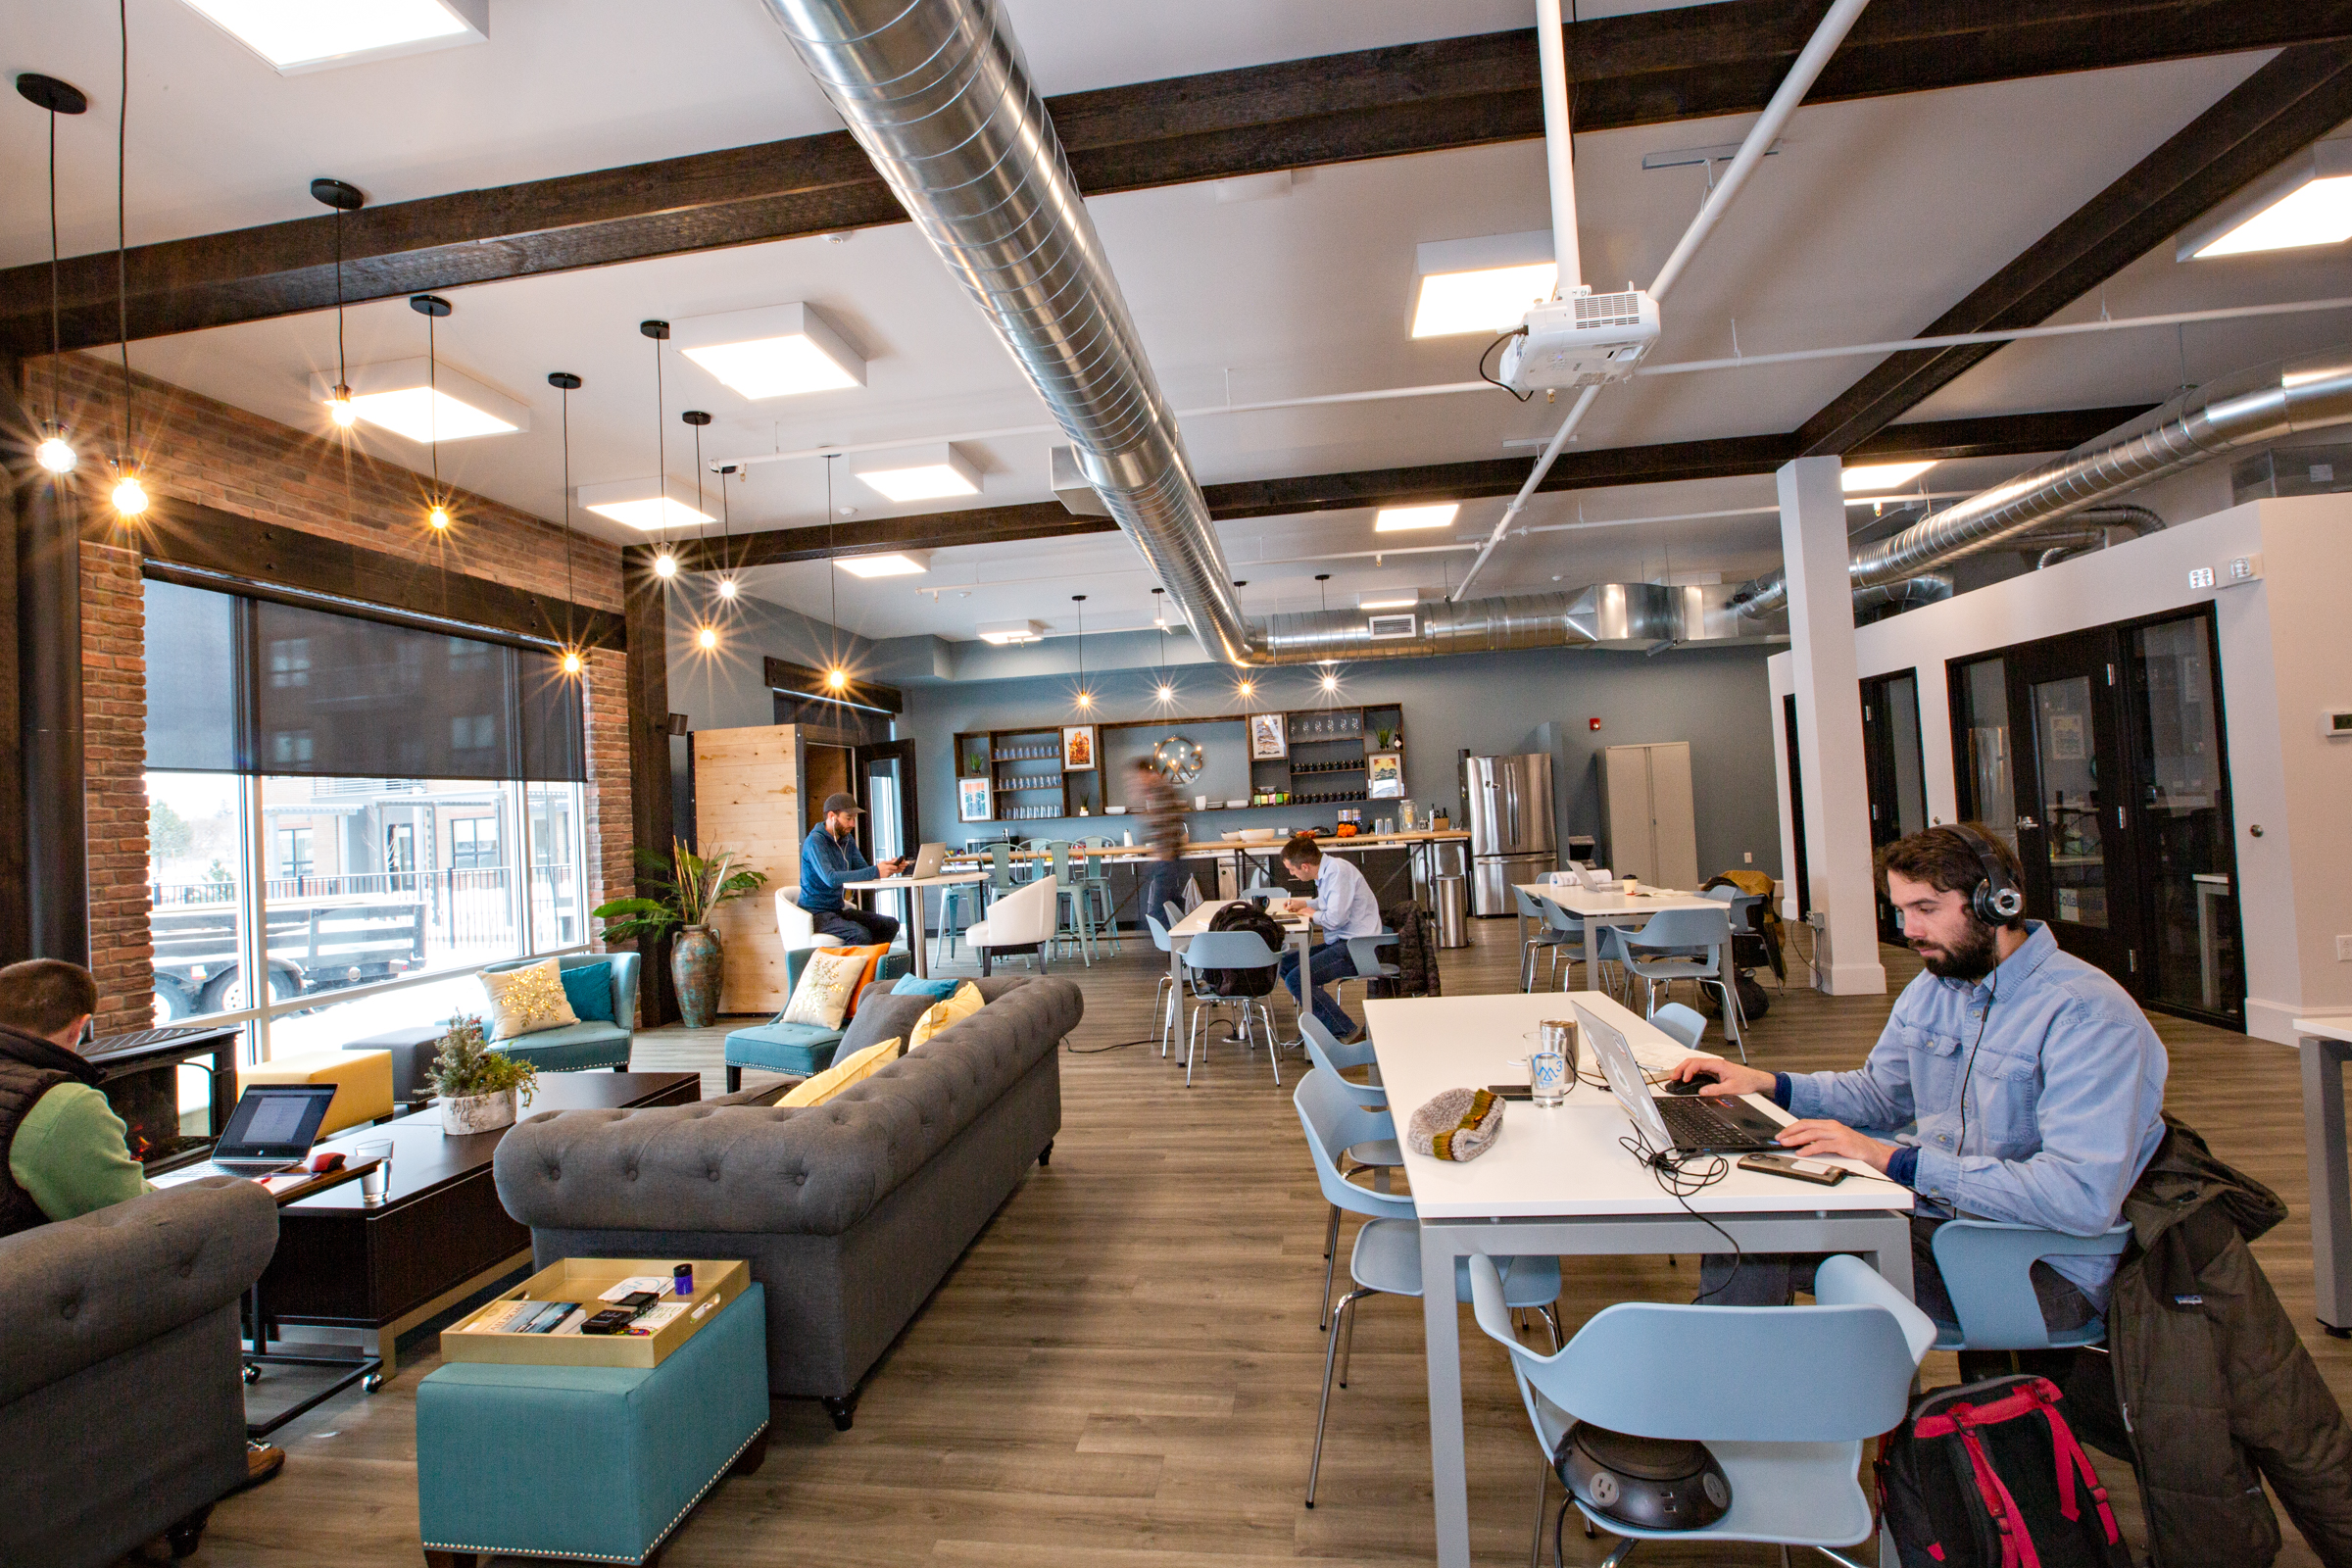 Coworking space in Missoula, Montana. Community Area